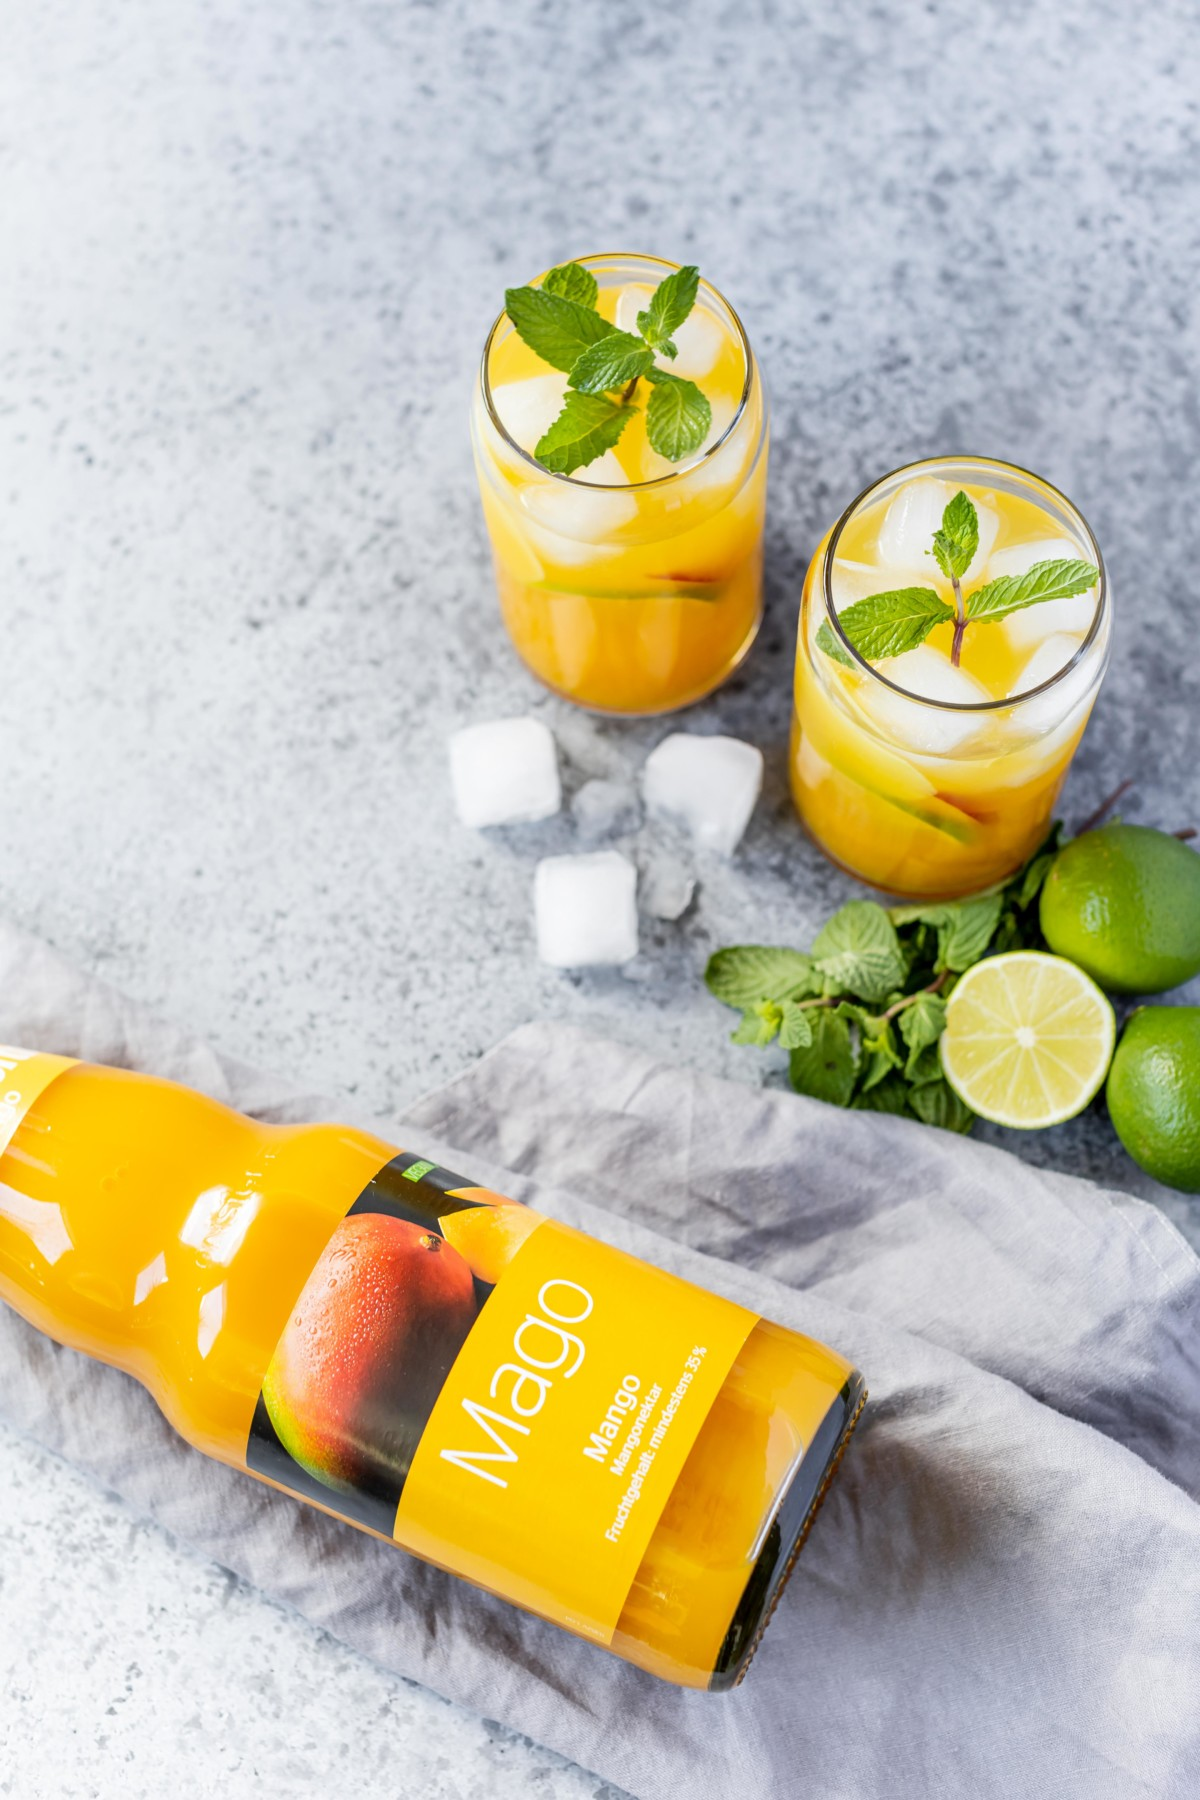 Mango Gin(ger) Fizz mit Limette // Mango Gin Fizz with Ginger and Lime by https://babyrockmyday.com/mango-gin-fizz/